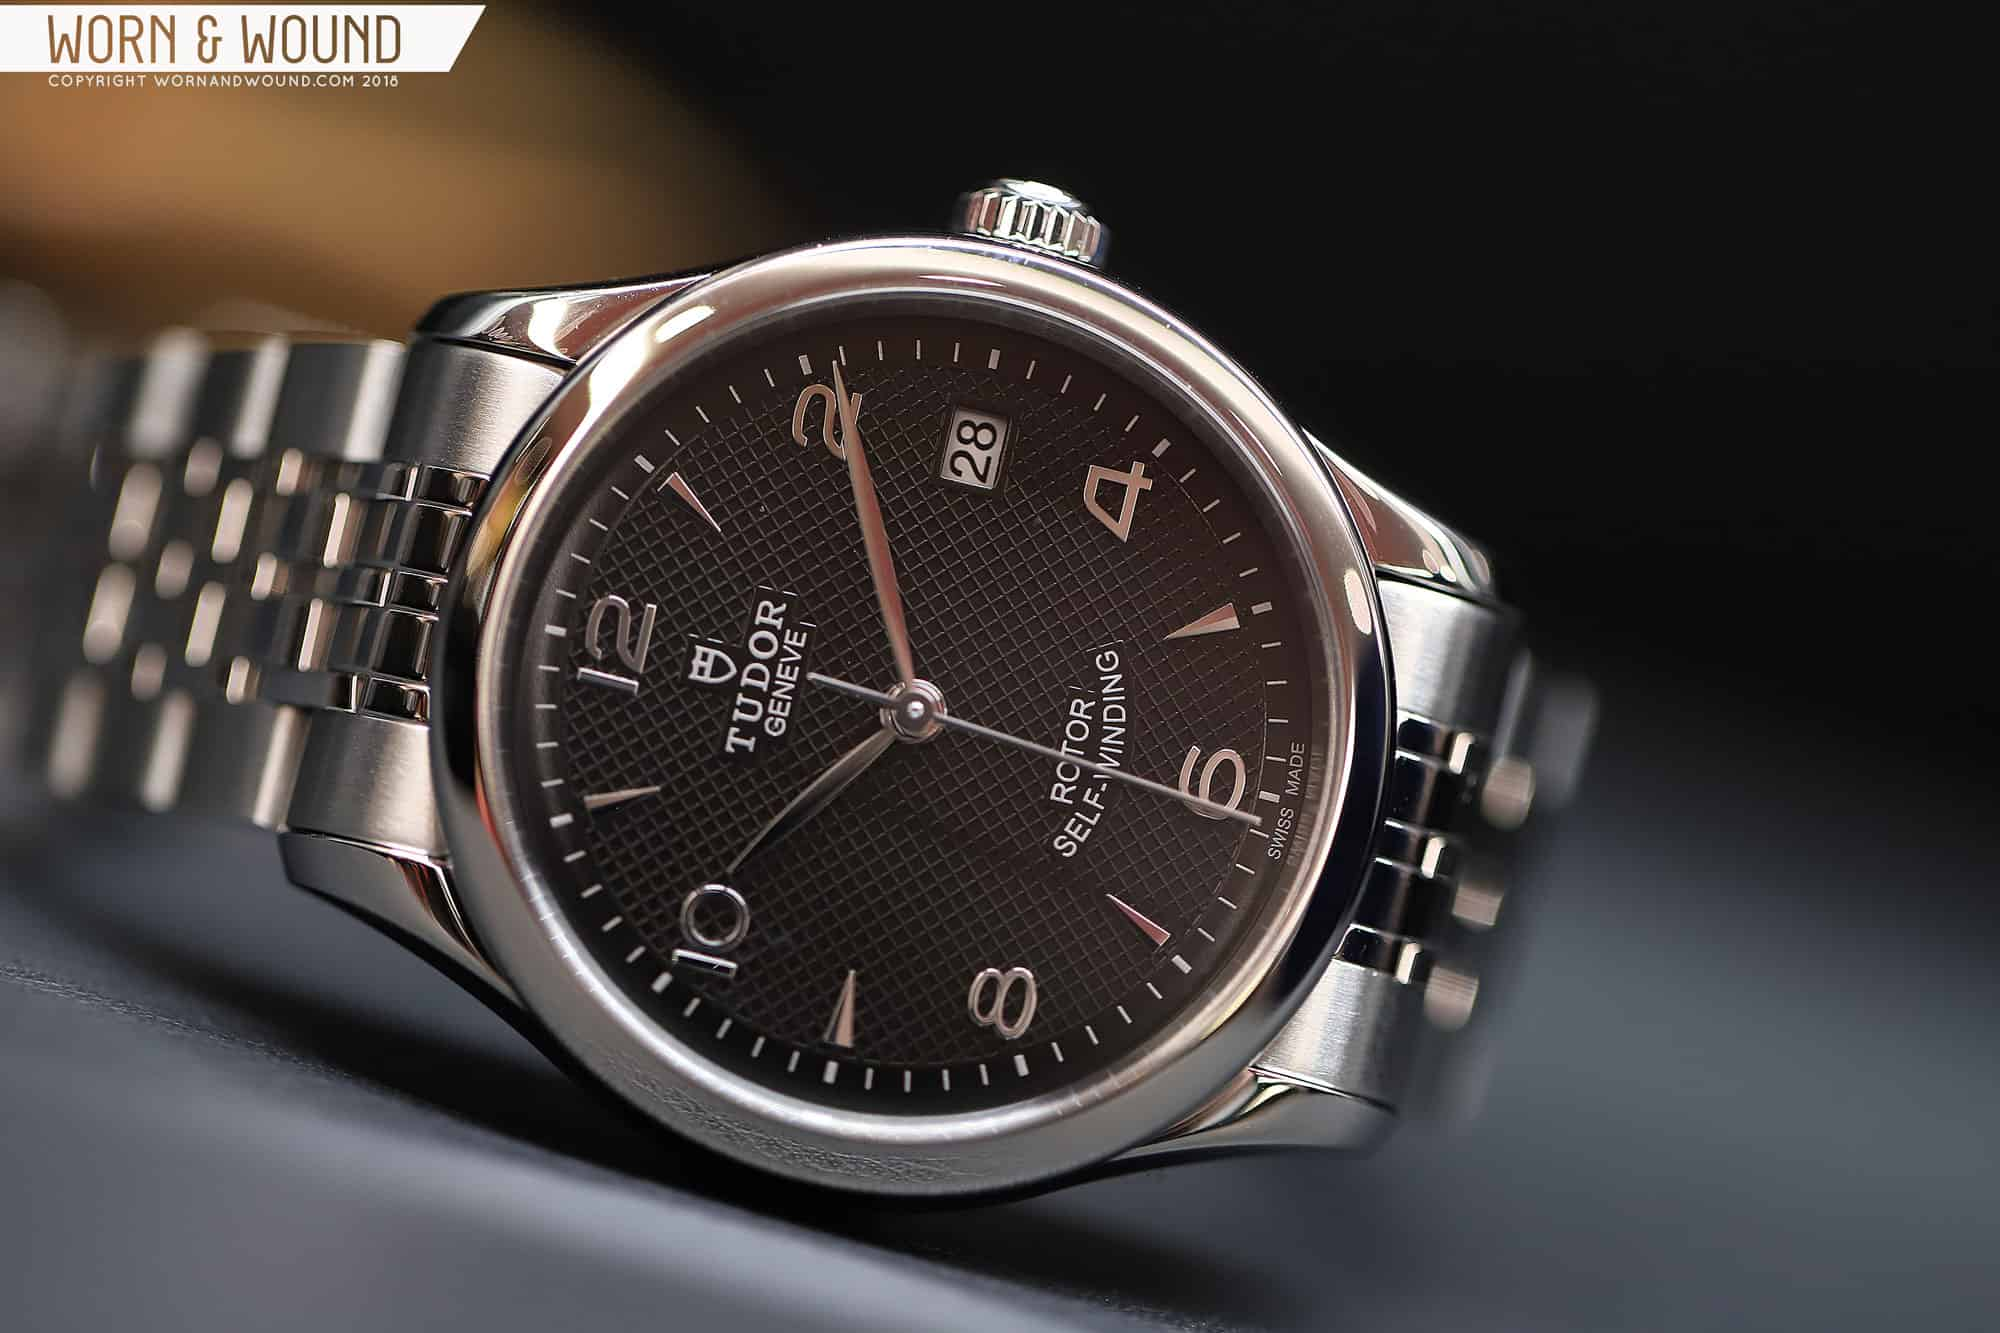 Baselworld 2018: Introducing the Tudor 1926 Collection, a New Entry Point Into the Shield